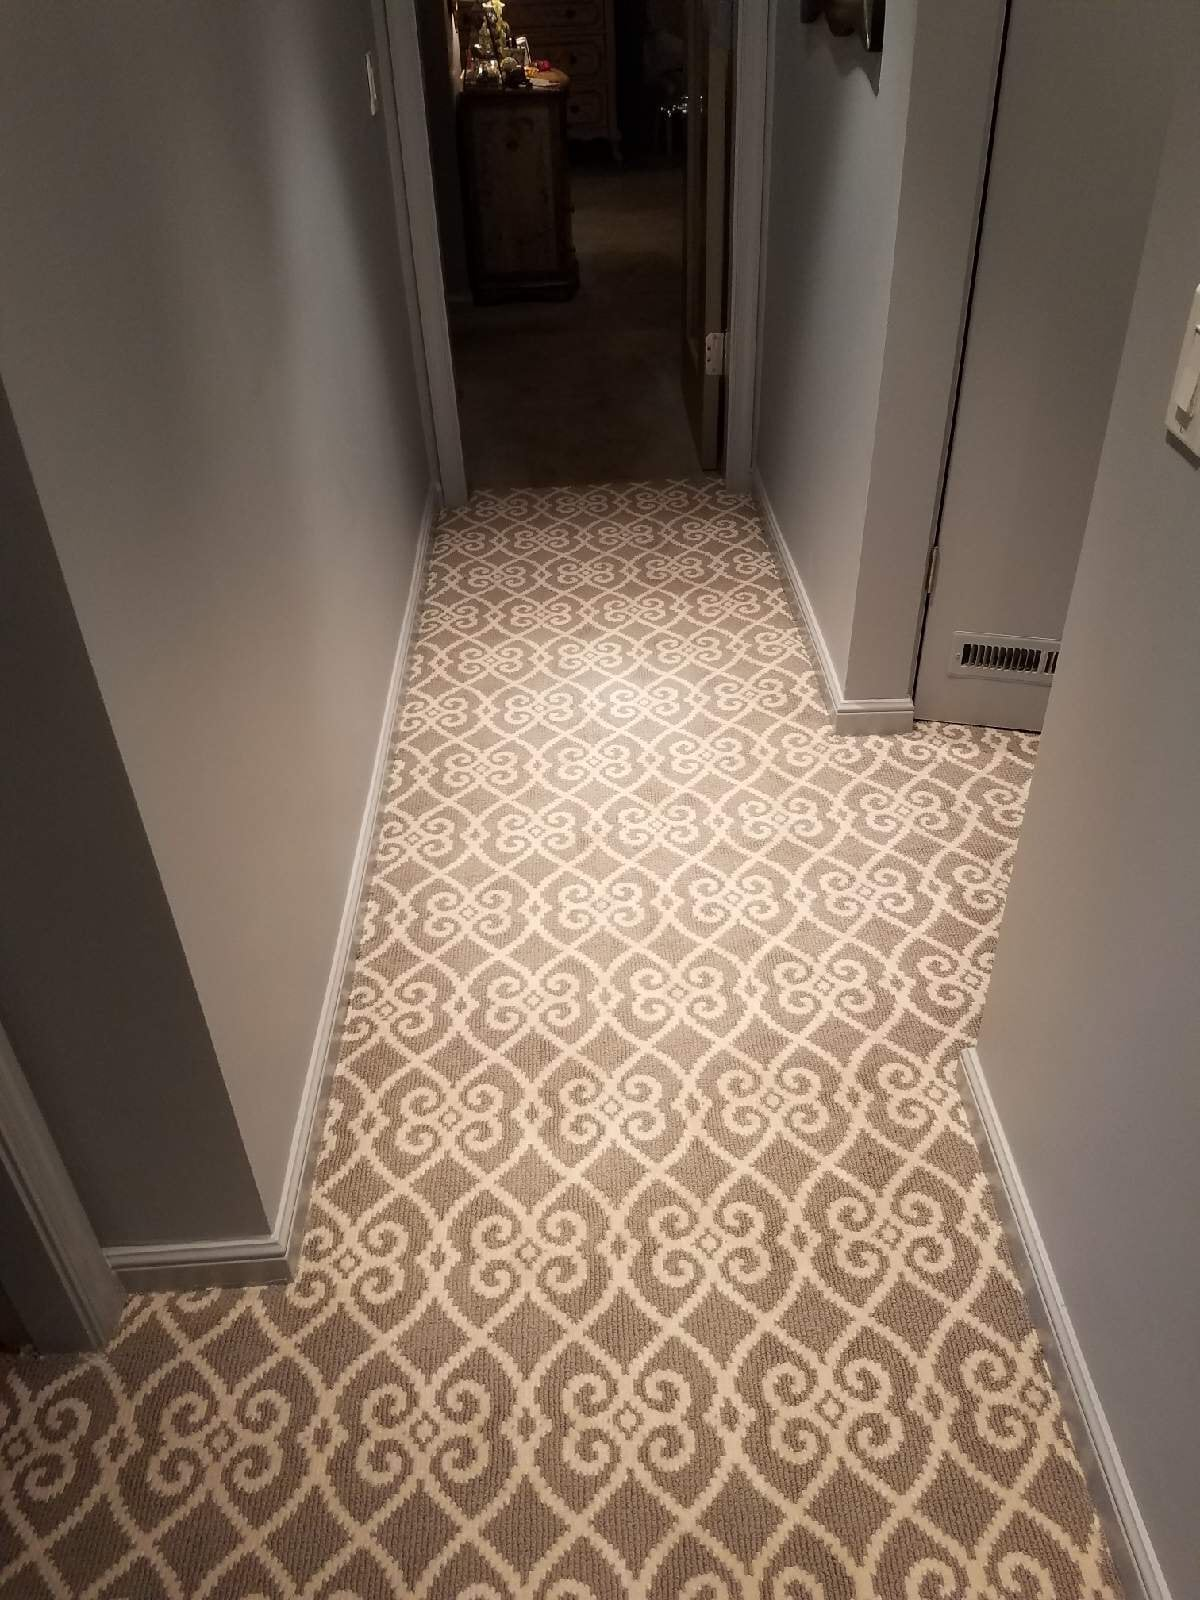 Professional carpet installation in Hatboro, PA from Reinhart Carpet Outlet